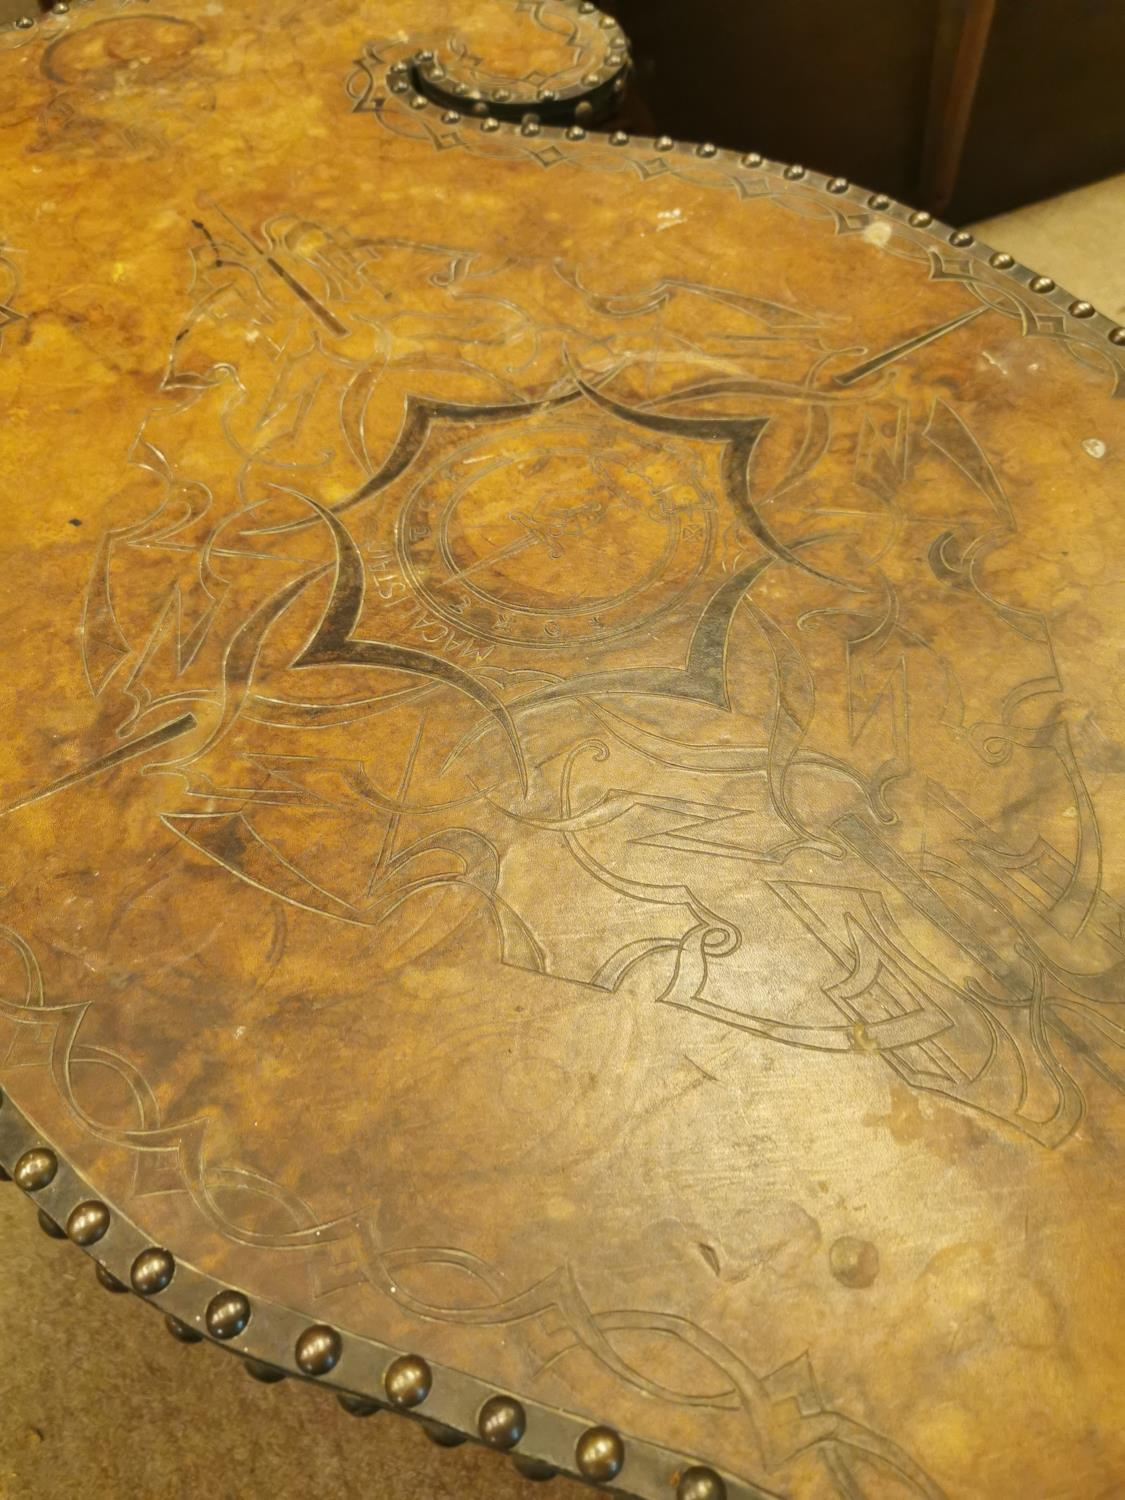 Prison Art table with tooled leather top - Image 2 of 2